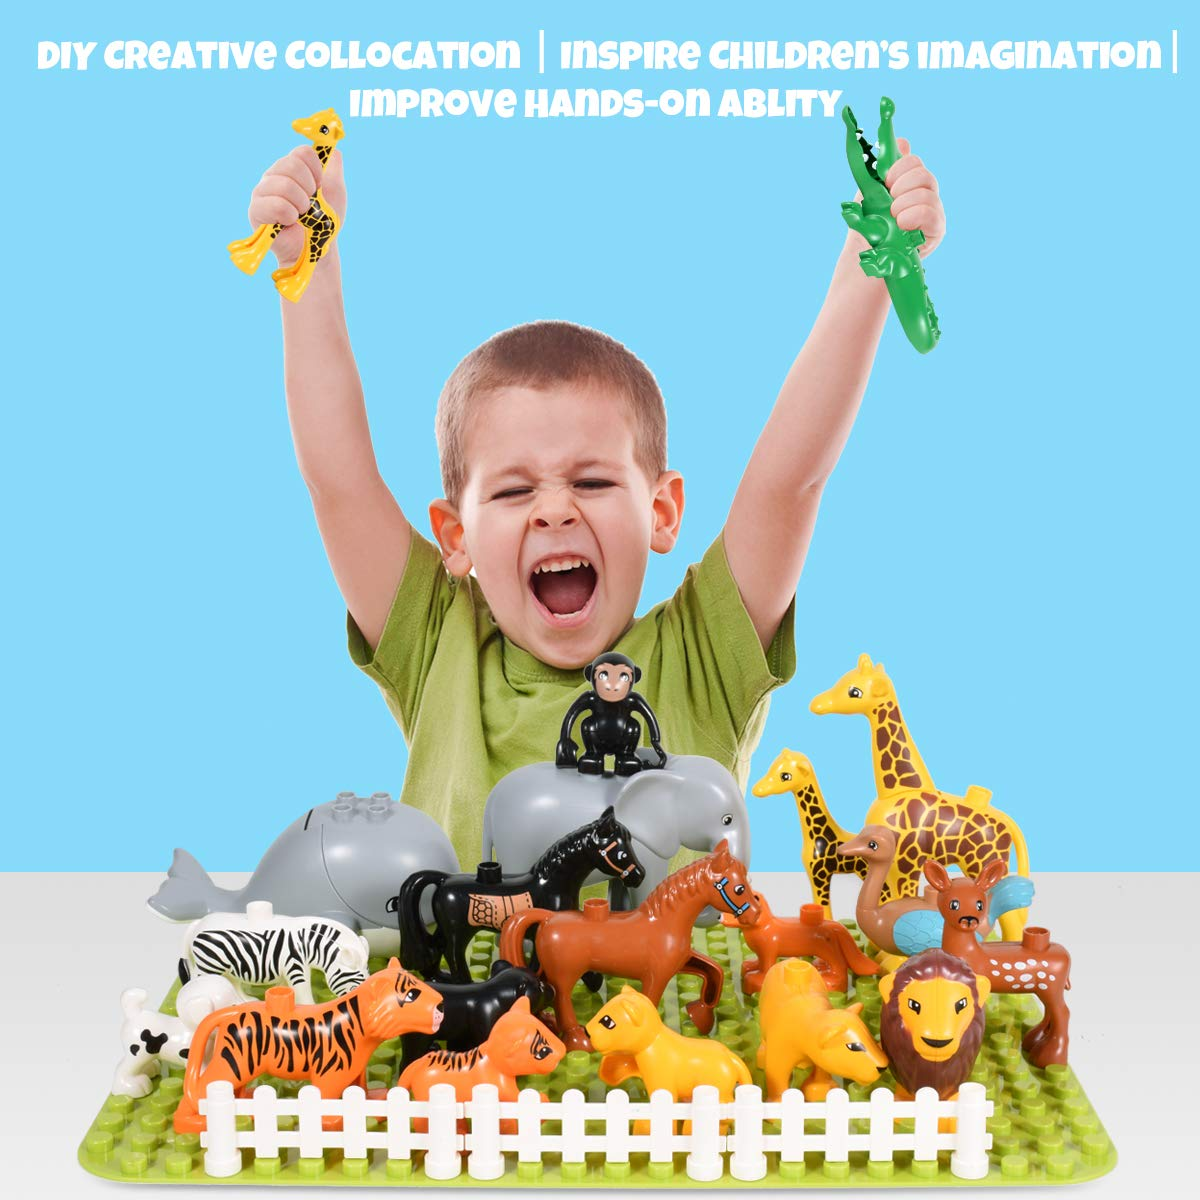 Animal Building Blocks Toy Set 25 PCS Juggle Animals Play Set Party Favor Birthday Educational Reward Fits Boys and Girls Plastic Animals Figures Toys for Toddlers